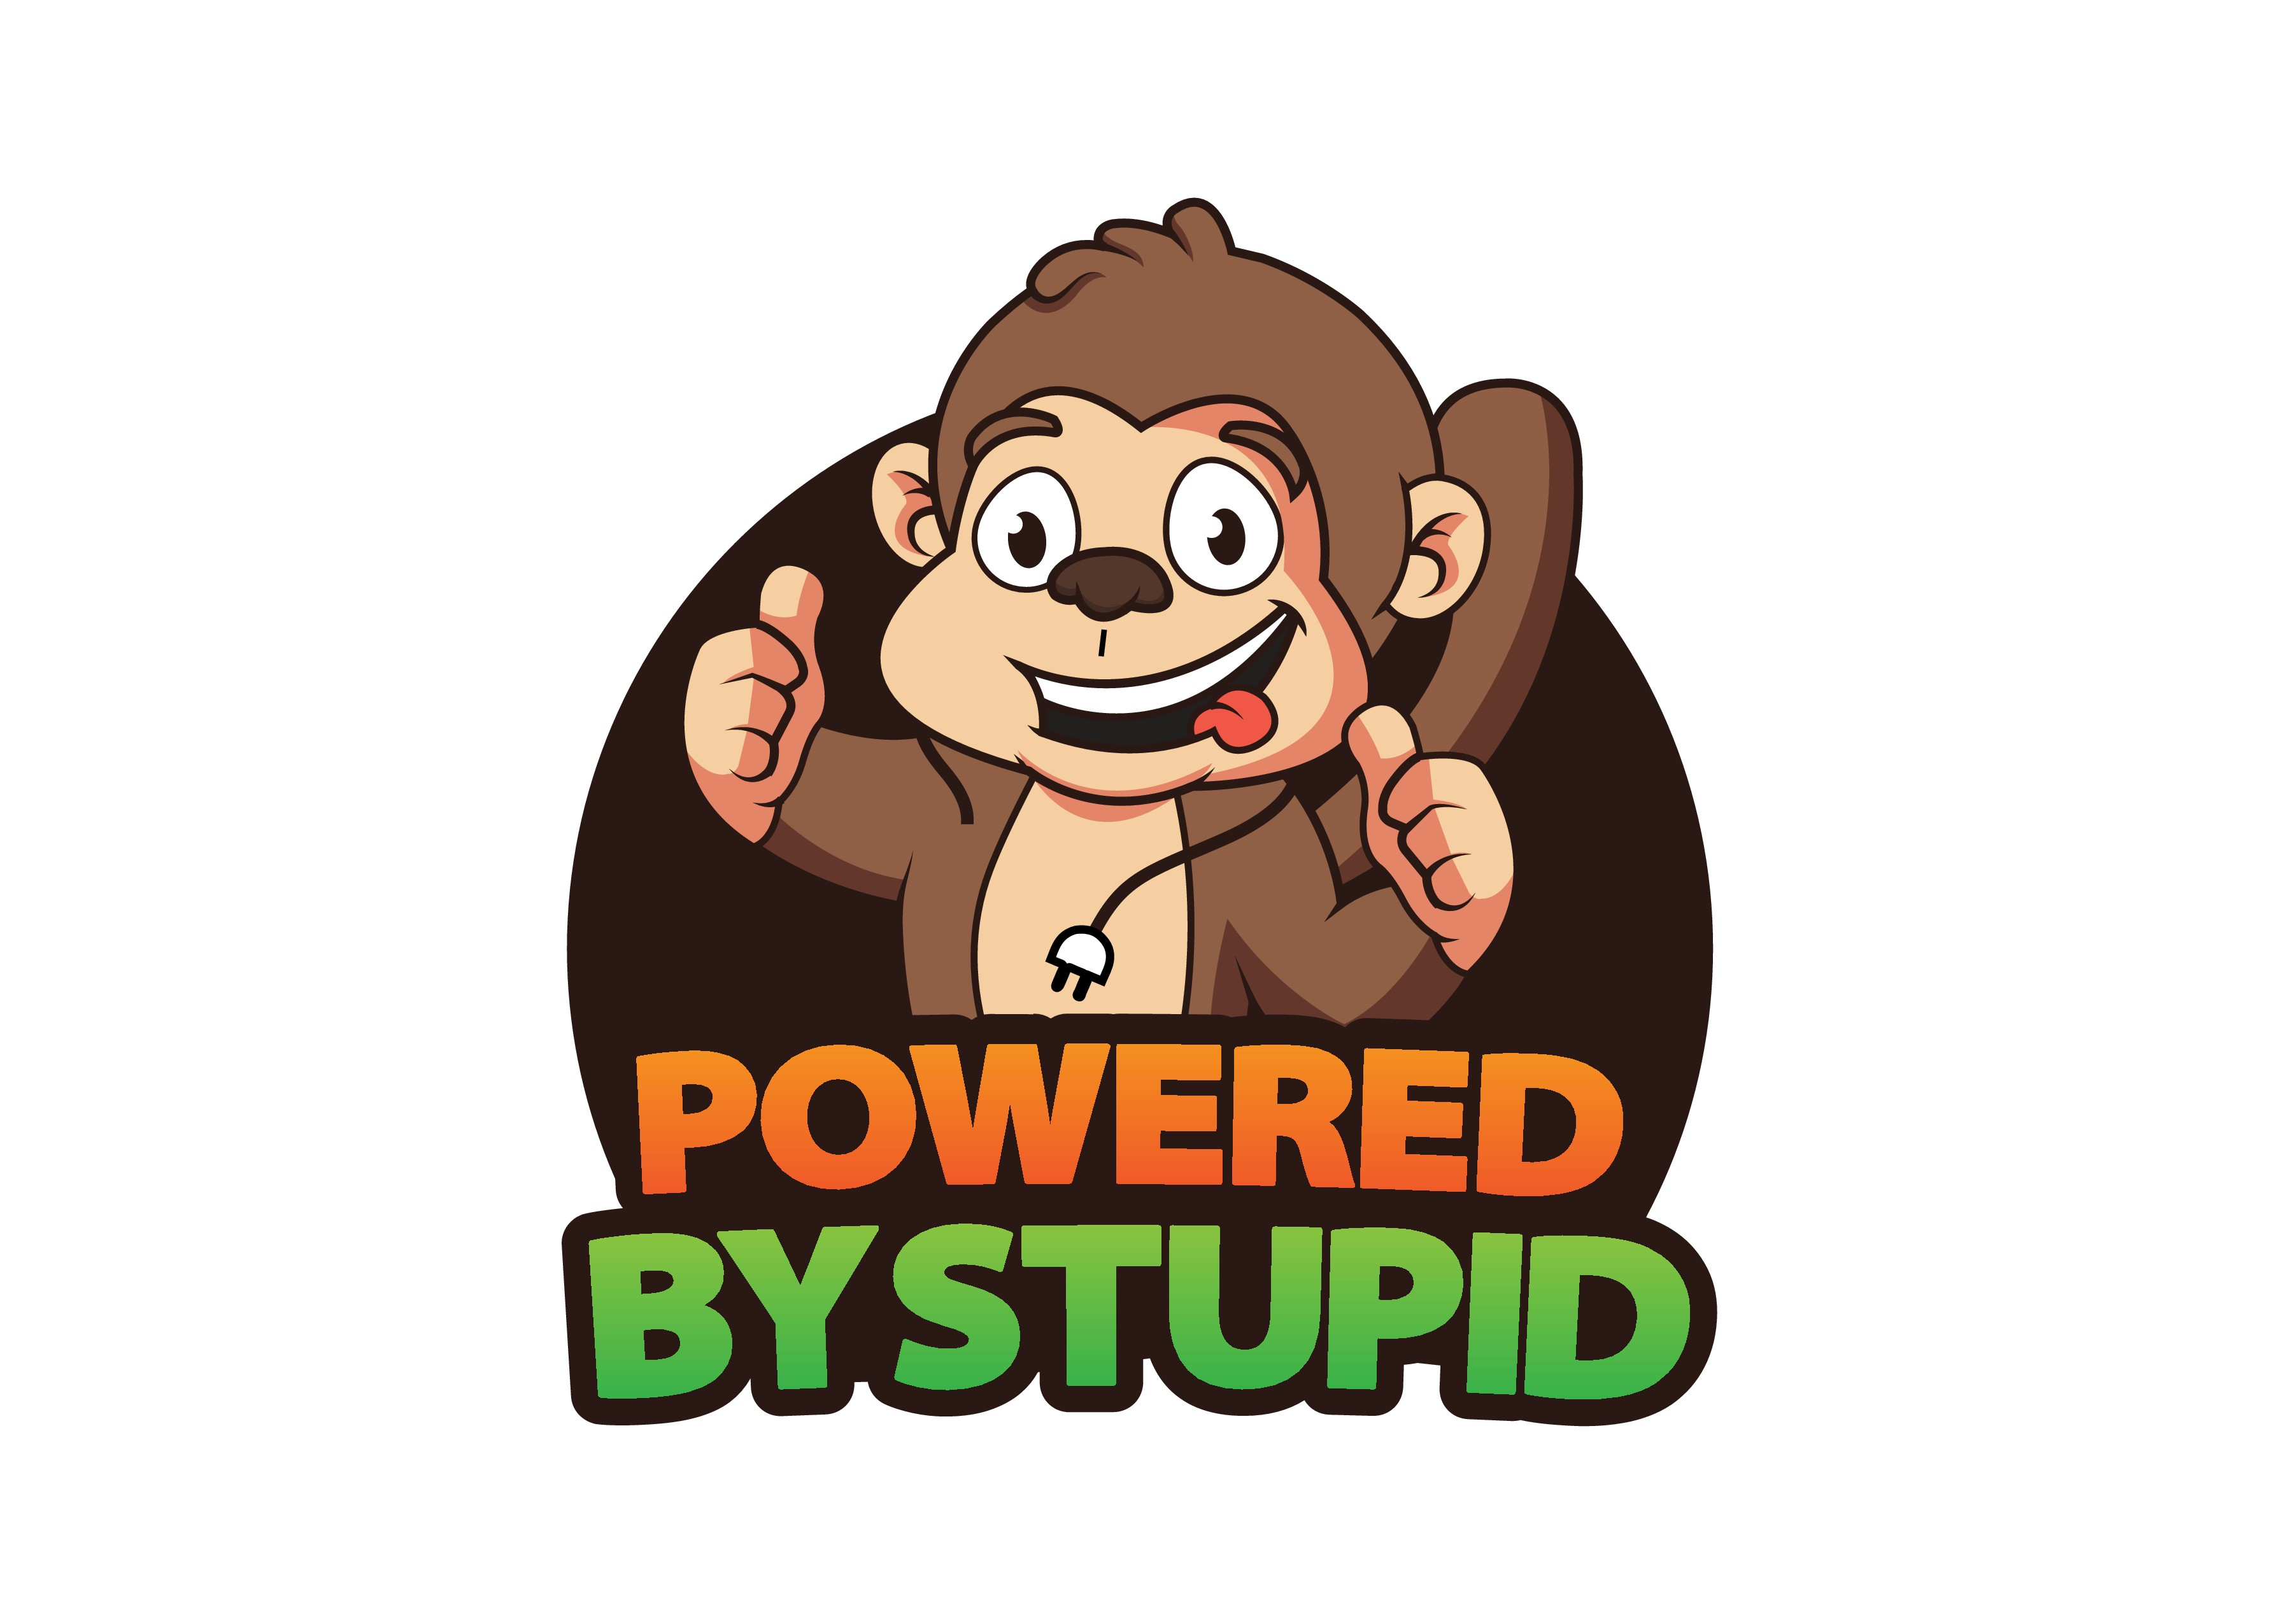 Push your limits and the limits of others on Powered By Stupid